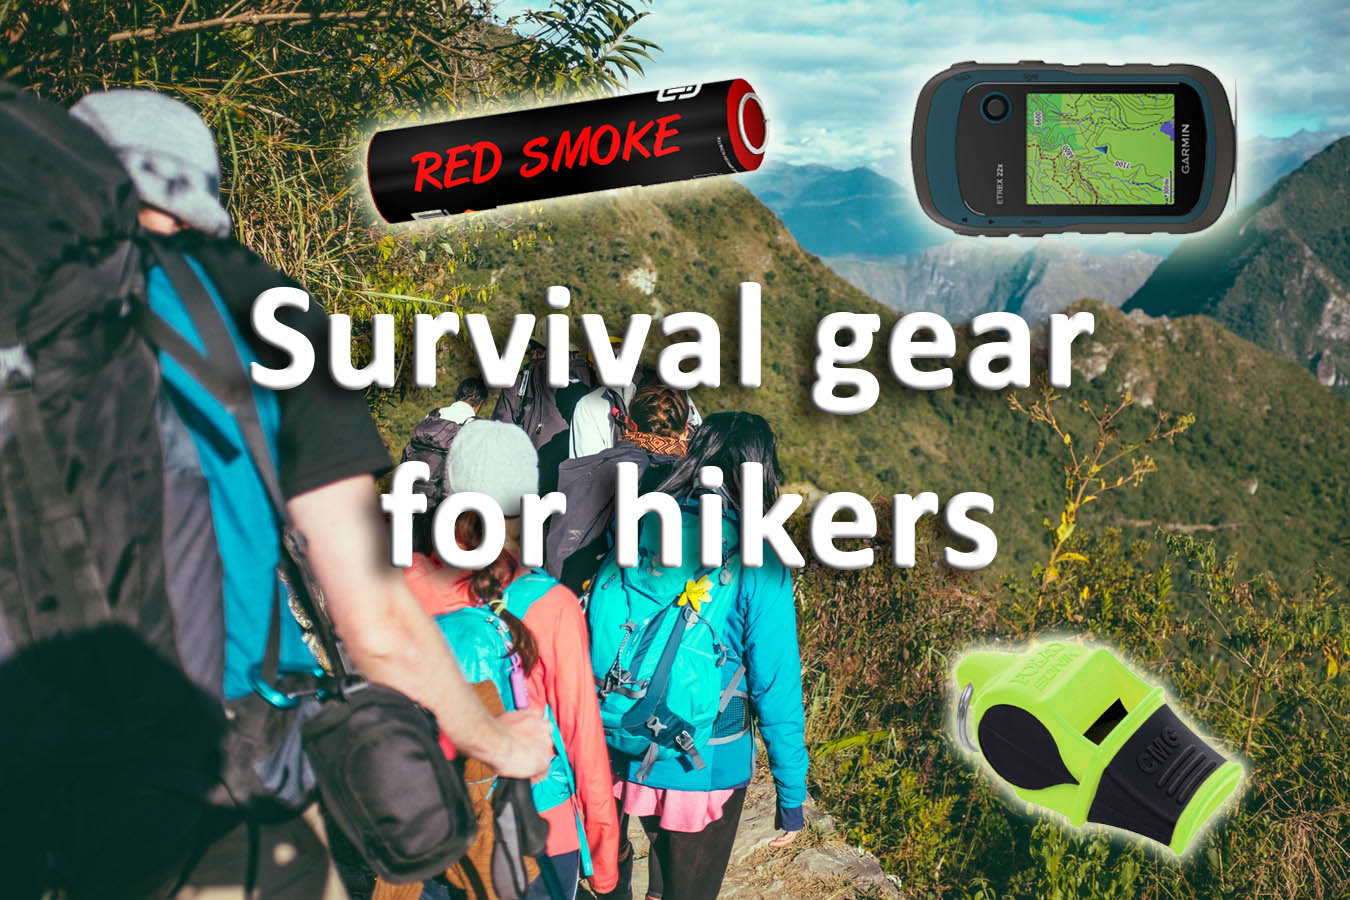 Survival gear for hikers